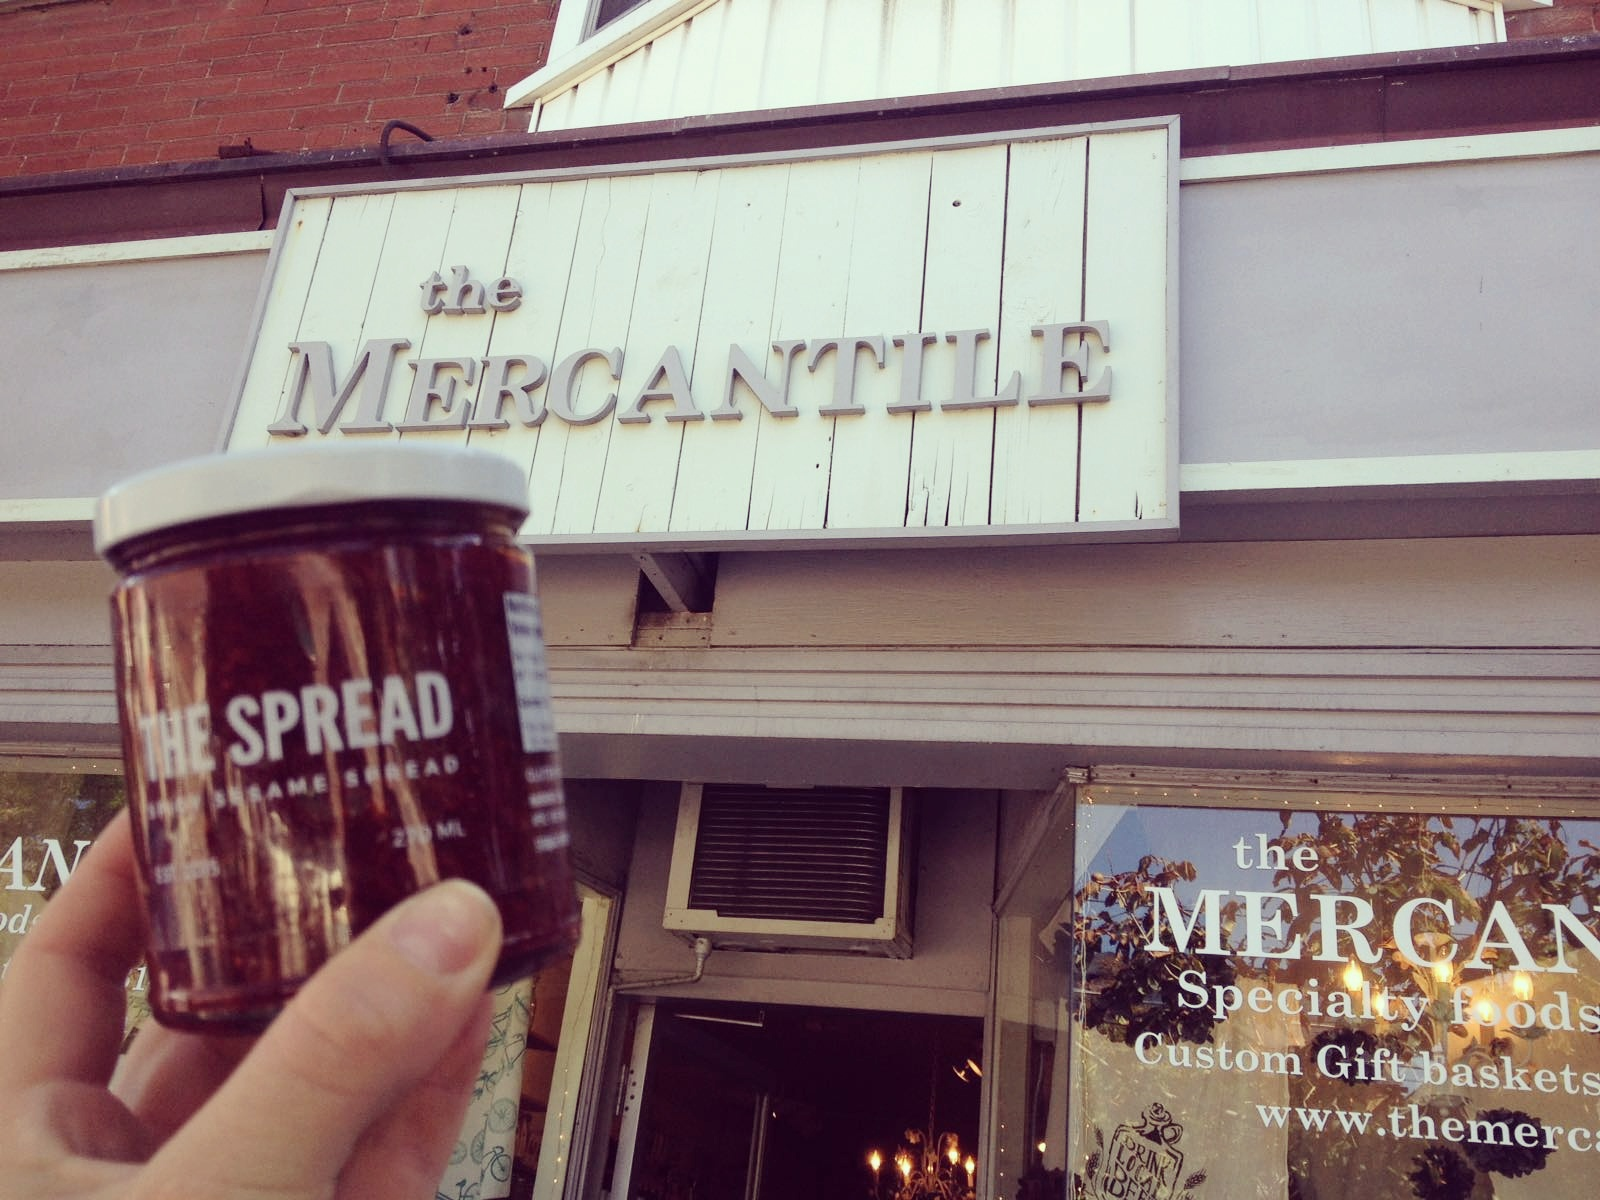 The Mercantile     297 Roncesvalles Ave Toronto, ON M6R 2M3 416 531 7563